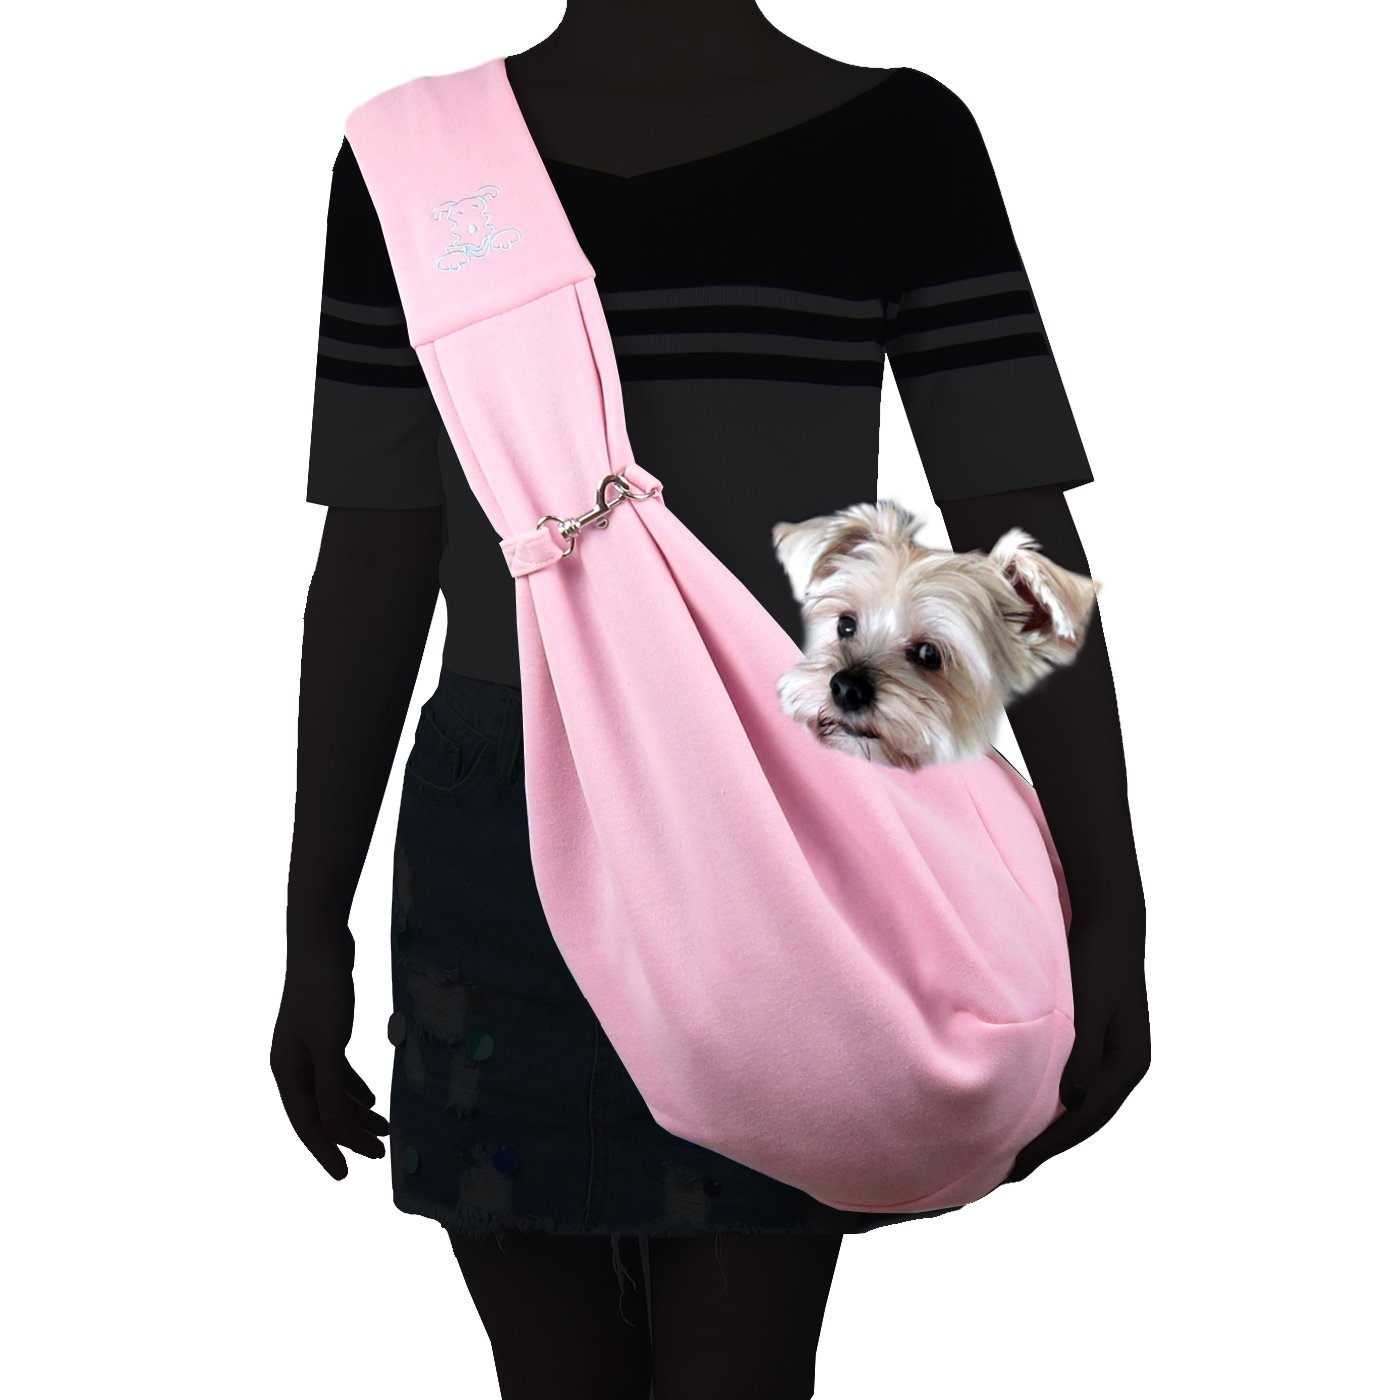 b5d2bbf492c Dog Carrier Slings That Aren t Uncomfortable  2019